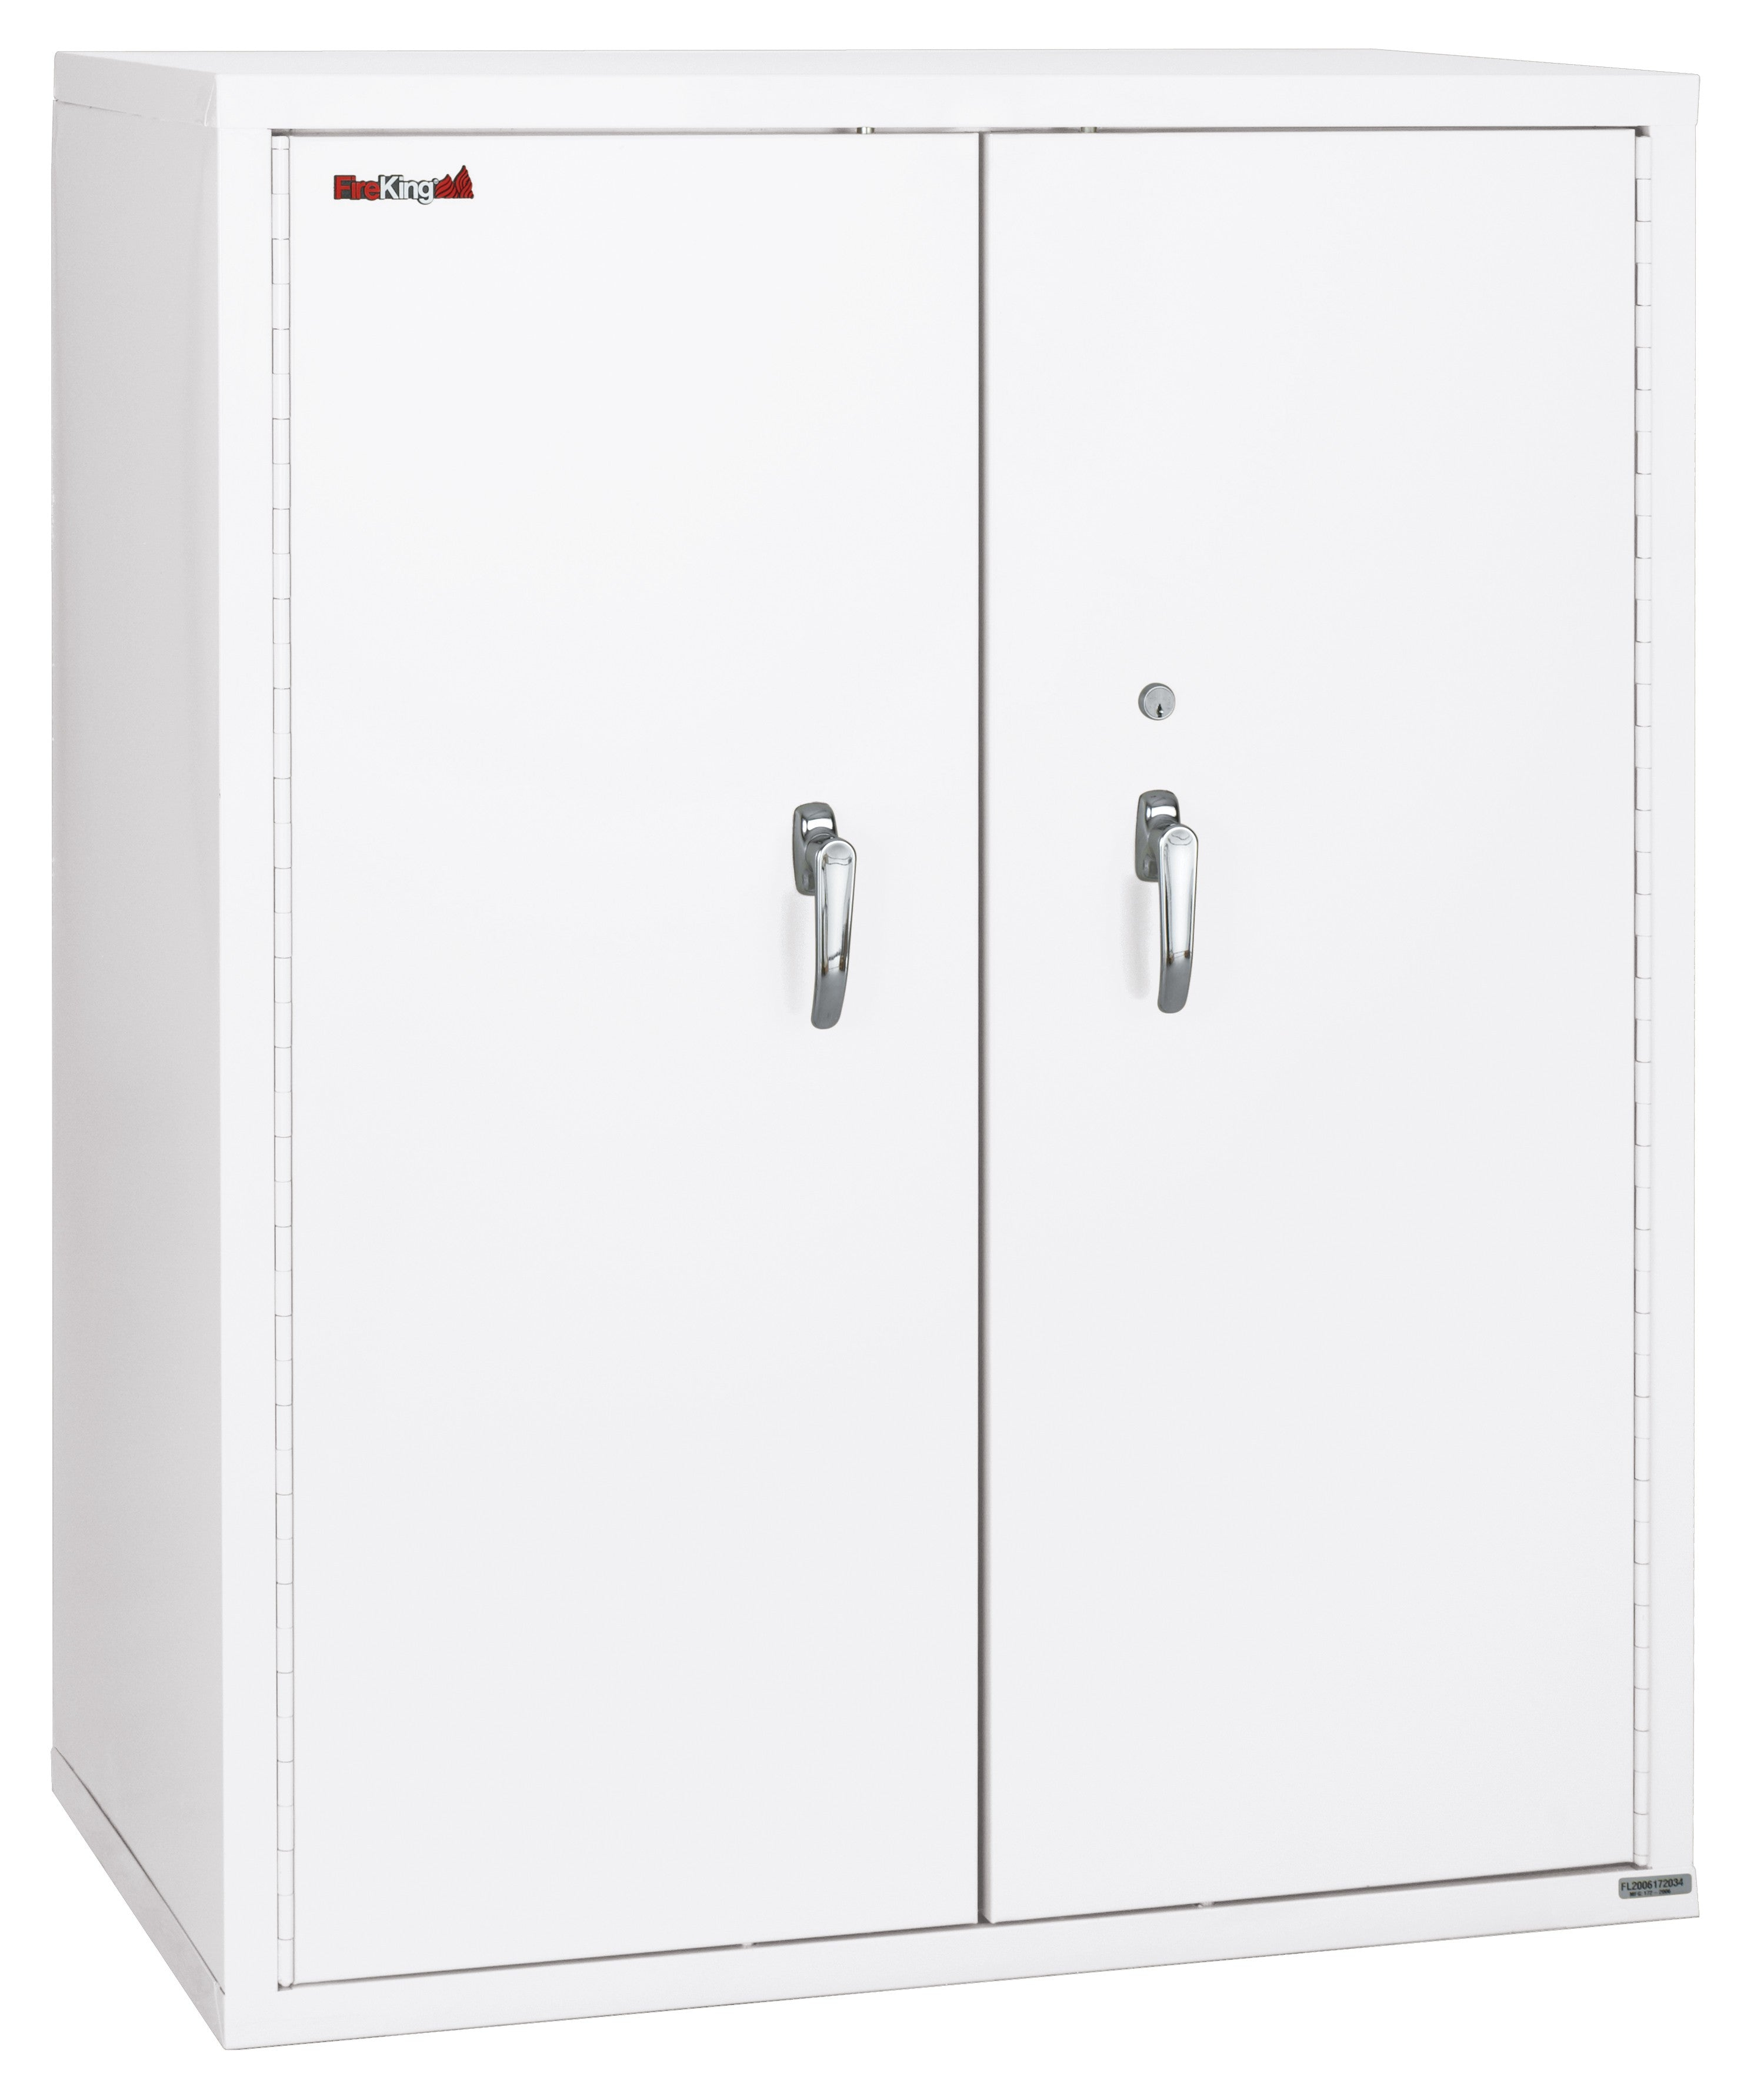 "Fireking 44"" Height Storage Cabinet with Adjustable Shelves"